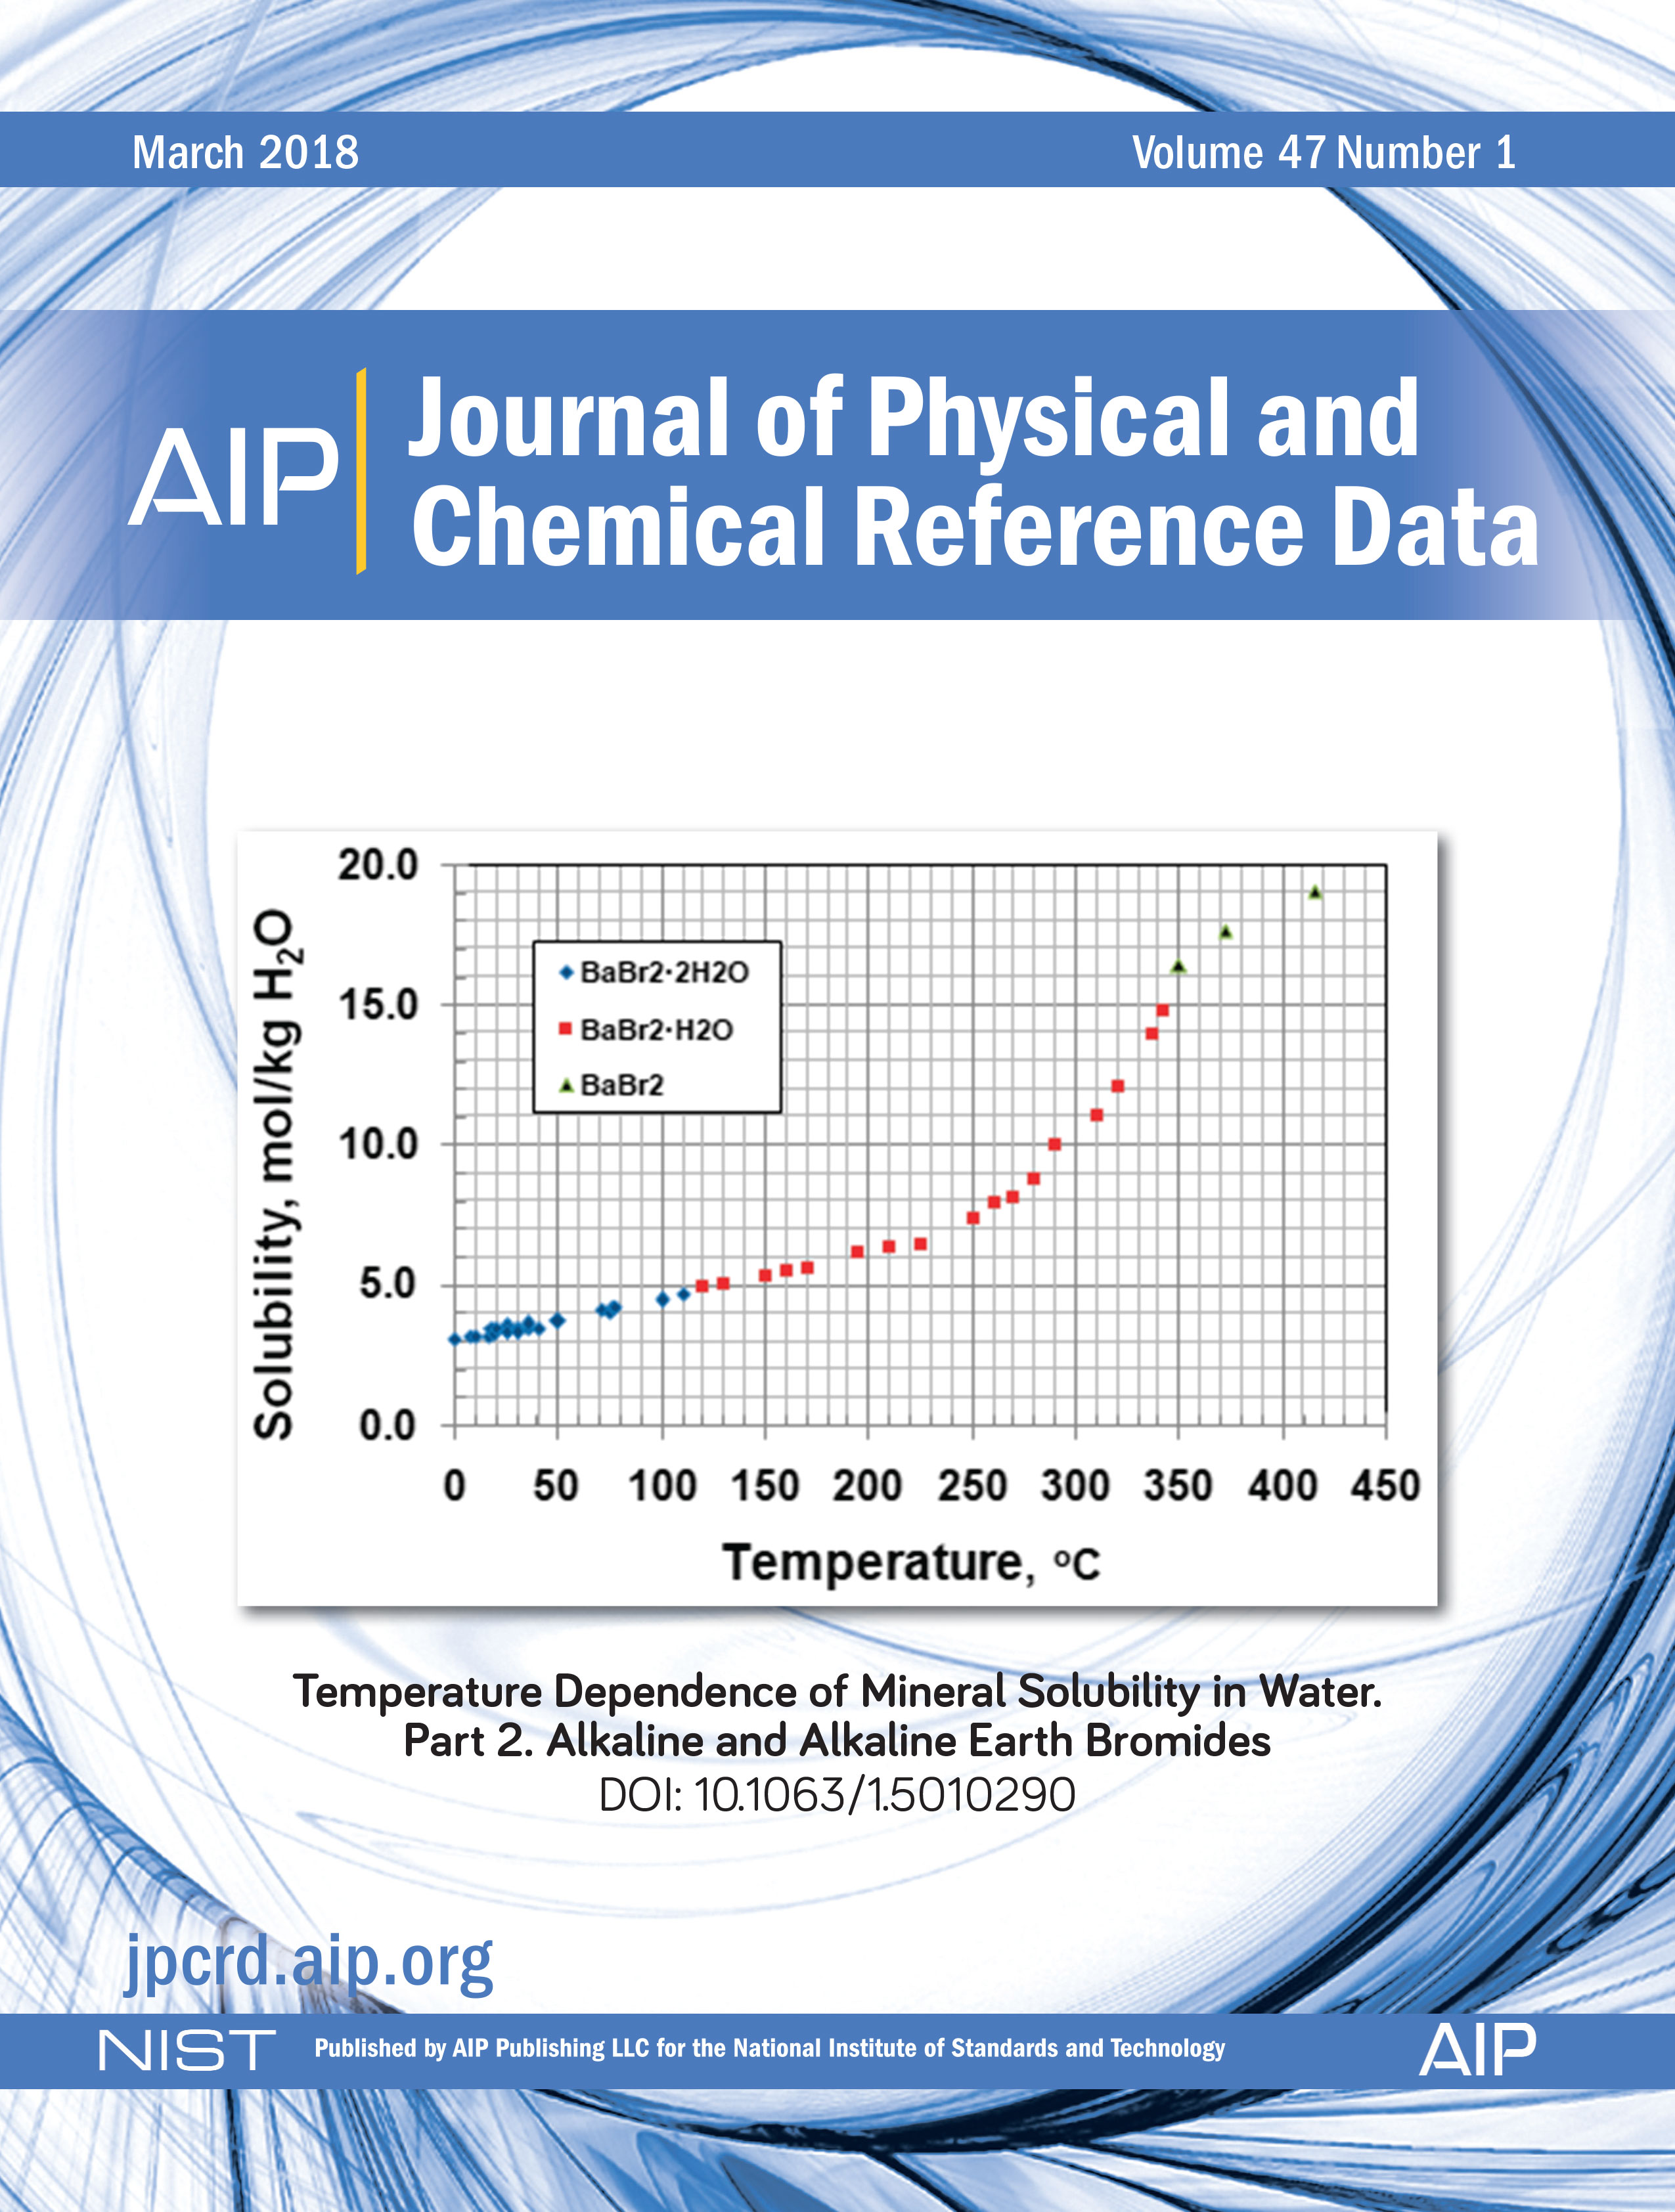 JANAF Thermochemical Tables, 1974 Supplement: Journal of